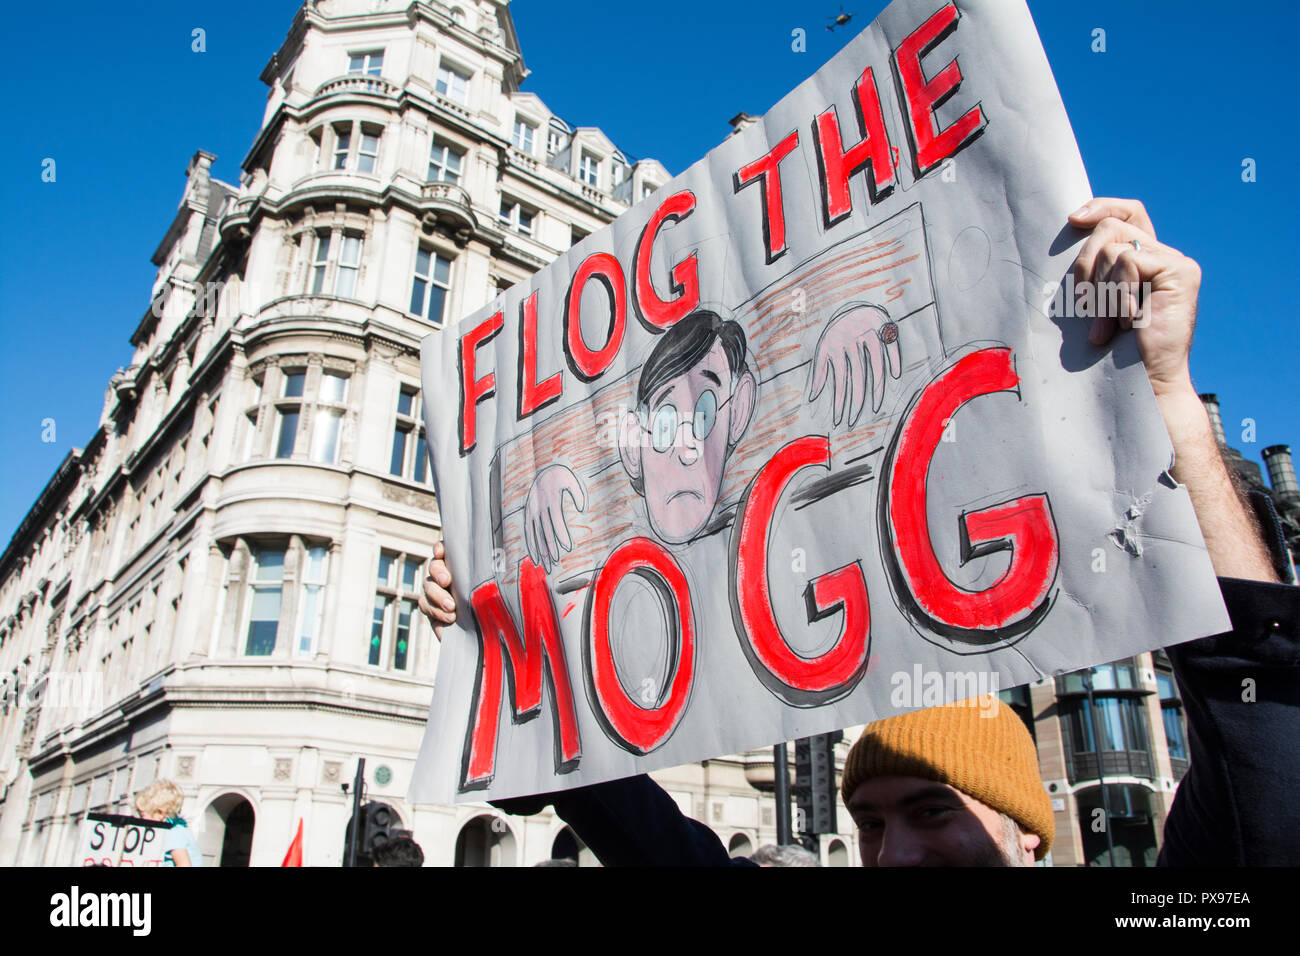 London, England, UK. 20 October, 2018.  Flog the Mogg placard. More than 600,000 people took part in today's People's Vote march to Parliament Square © Benjamin John/ Alamy Live News. - Stock Image